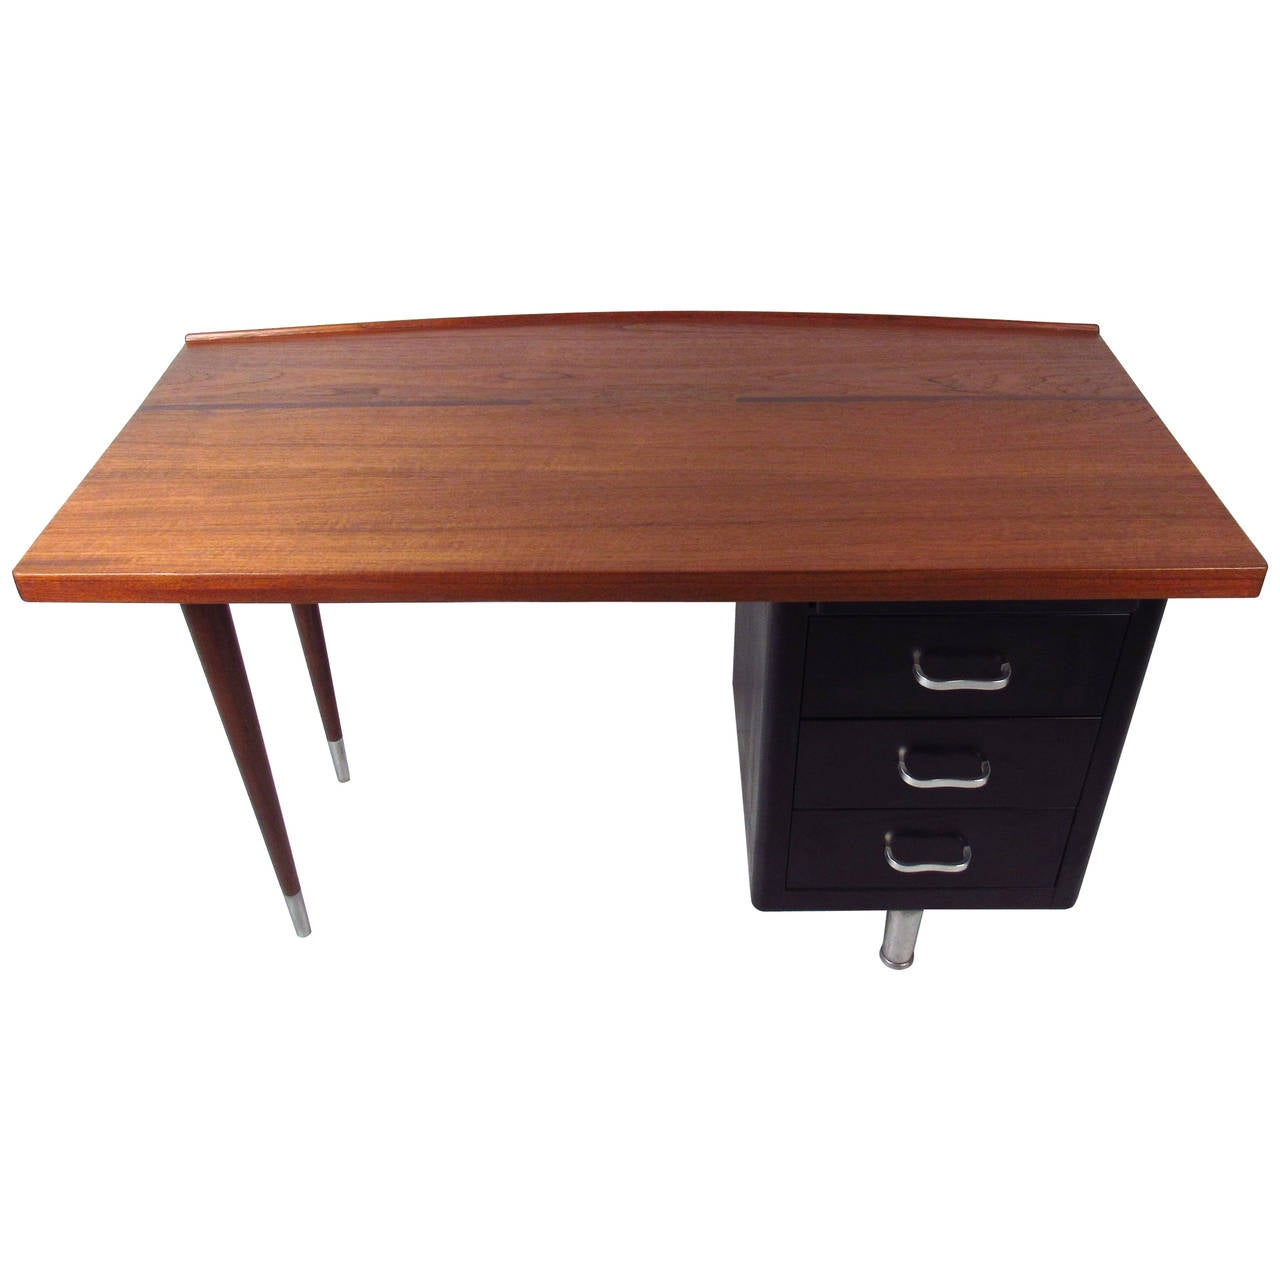 Vintage Industrial Writing Desk with Raised Edge